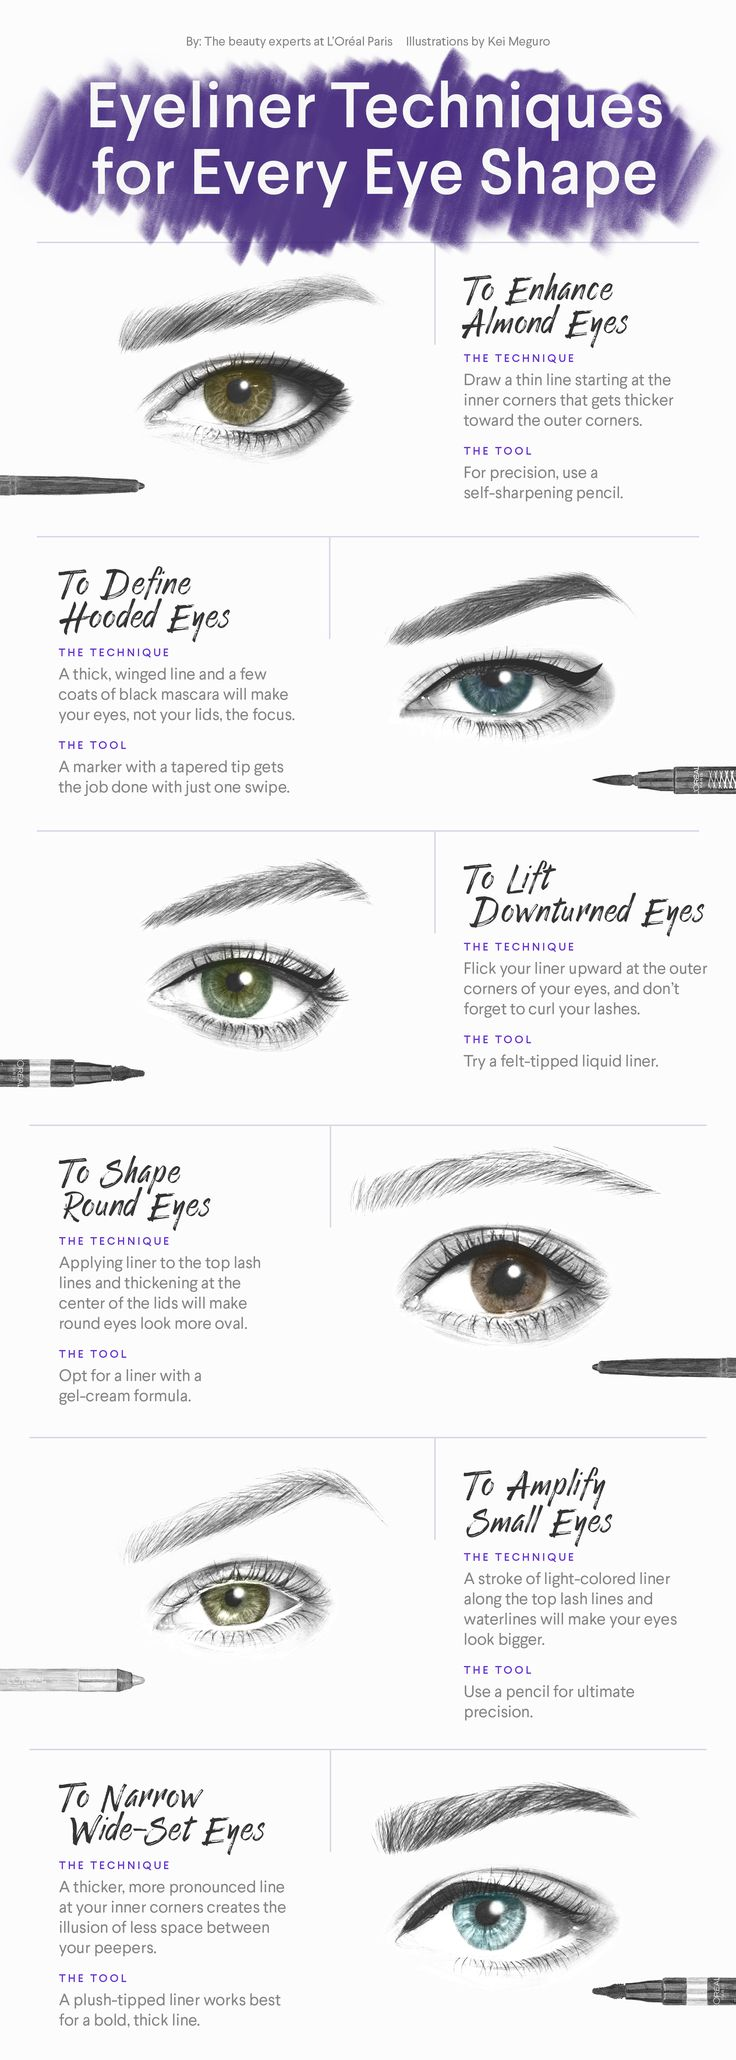 The best eyeliner techniques for every eye shape.